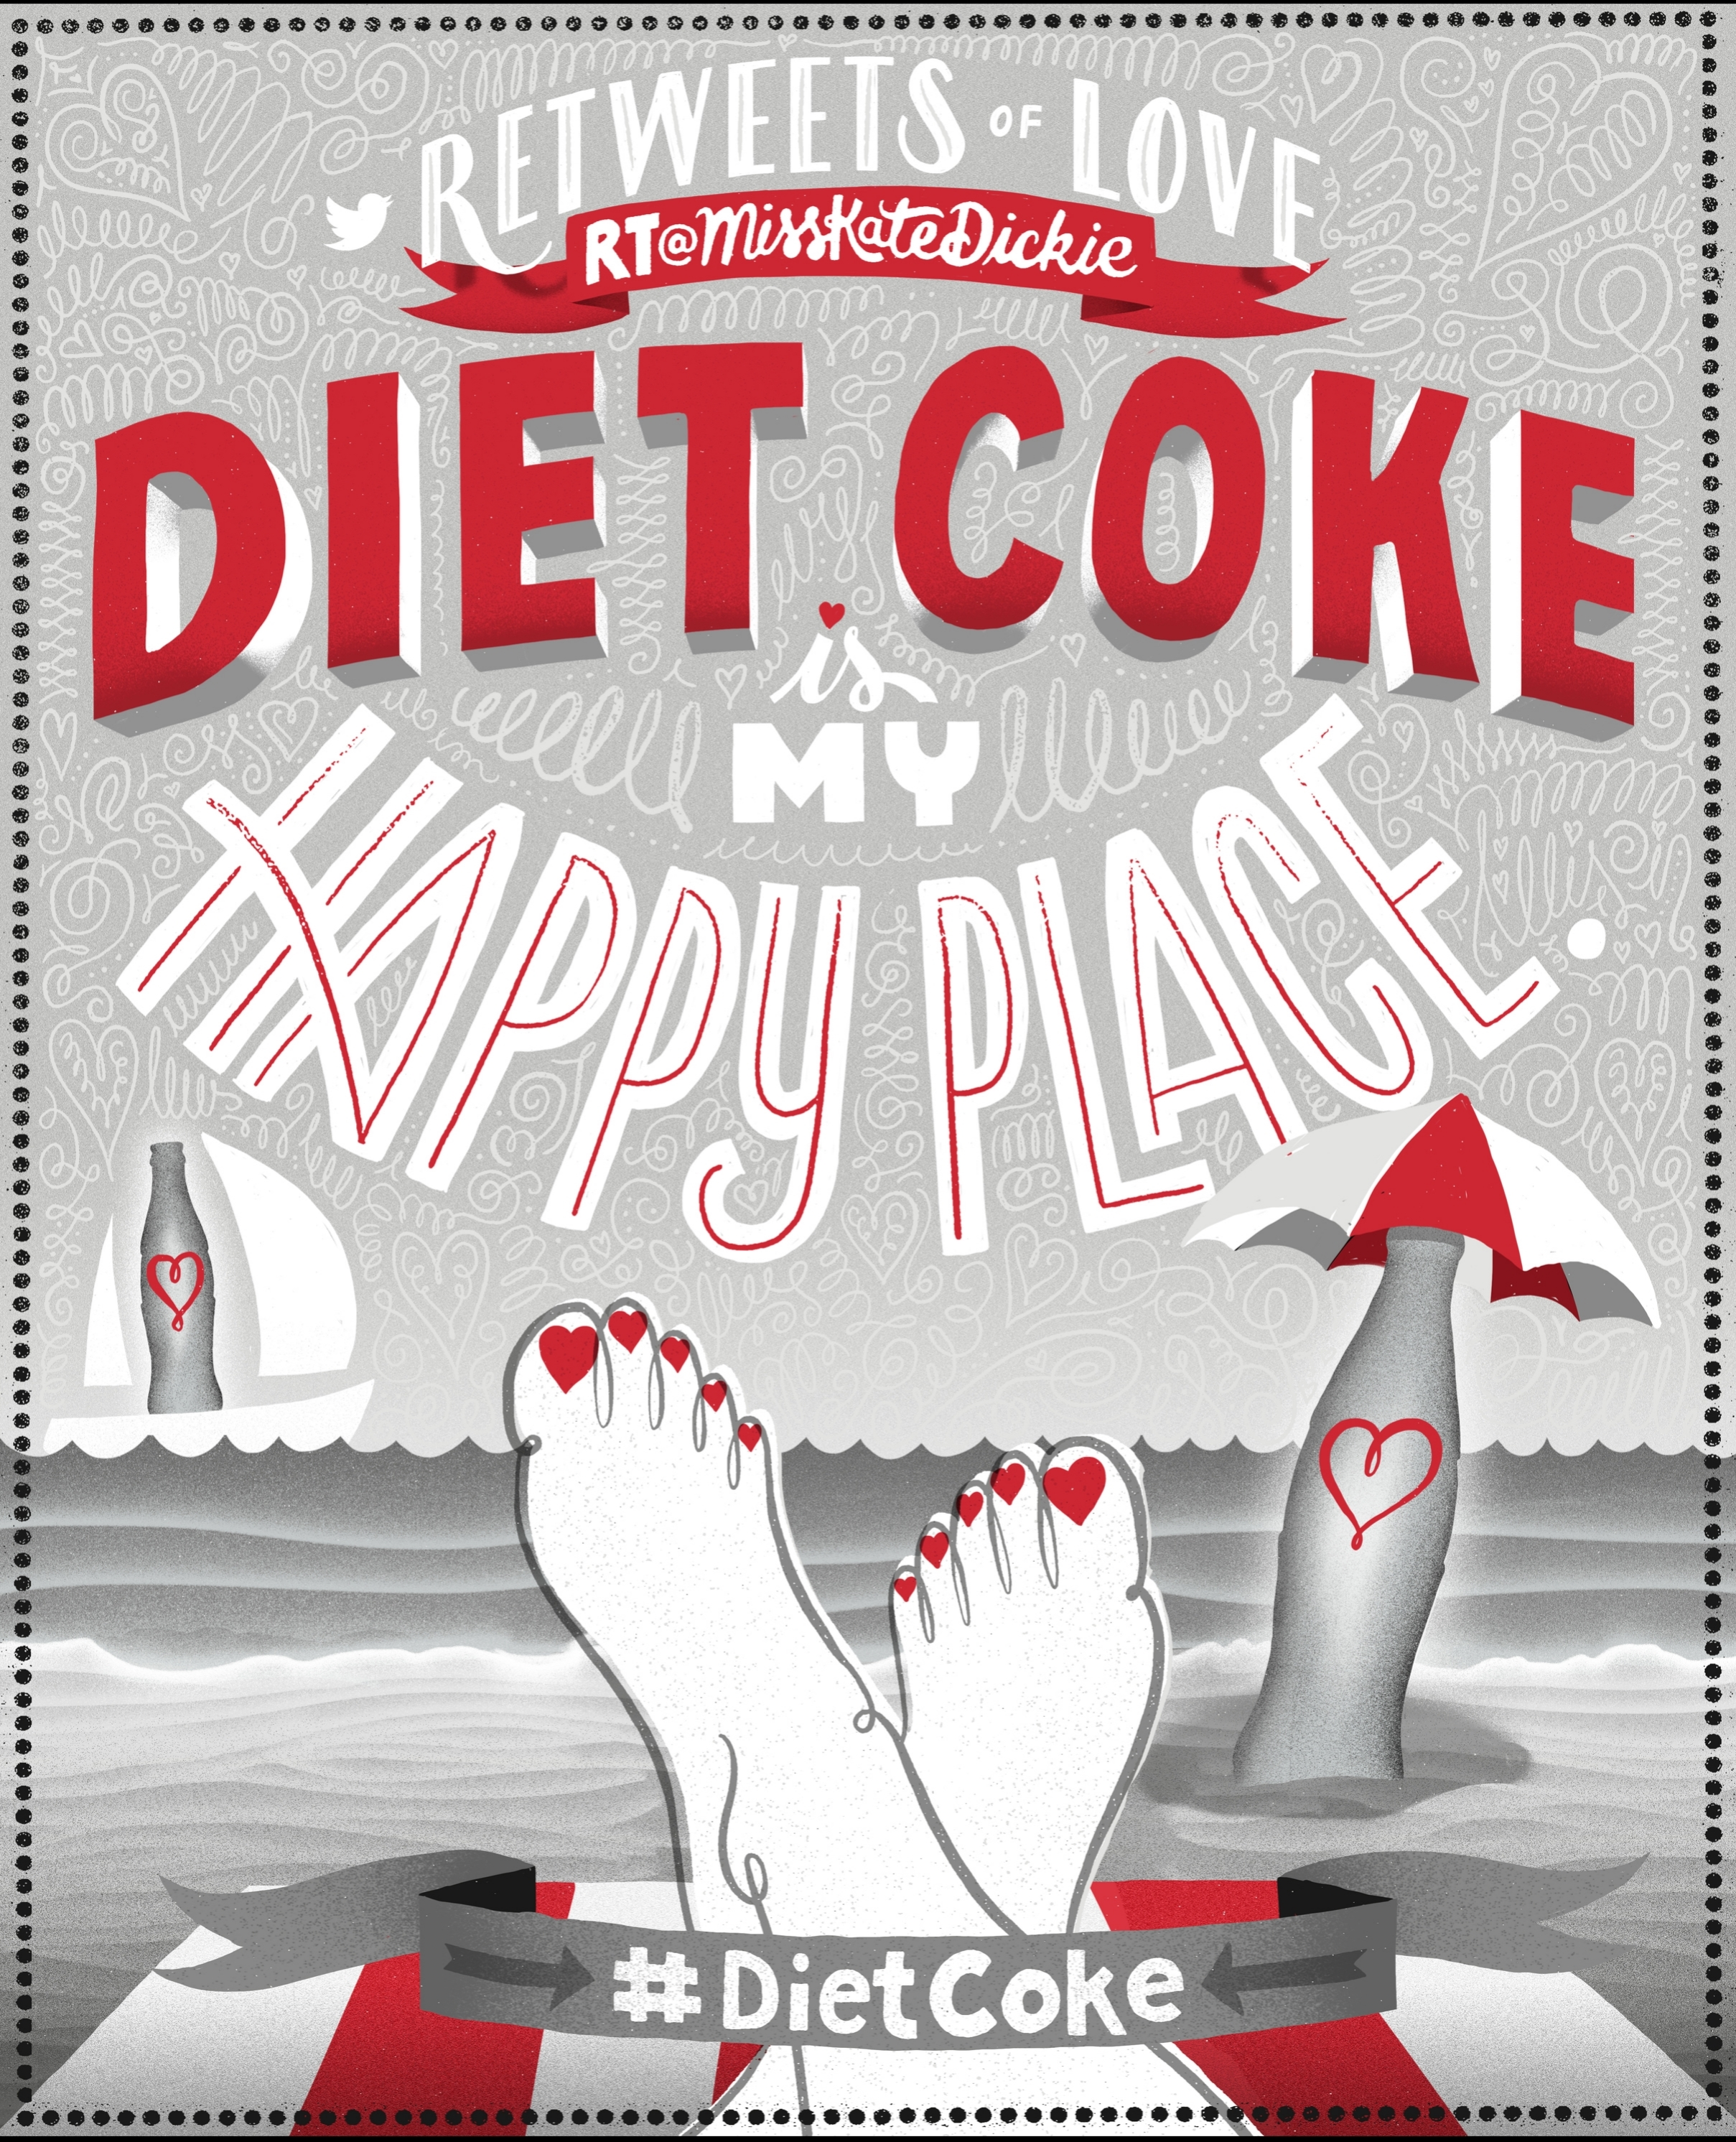 Poster_HAPPY PLACE ROGERS FINAL_11_6.jpg